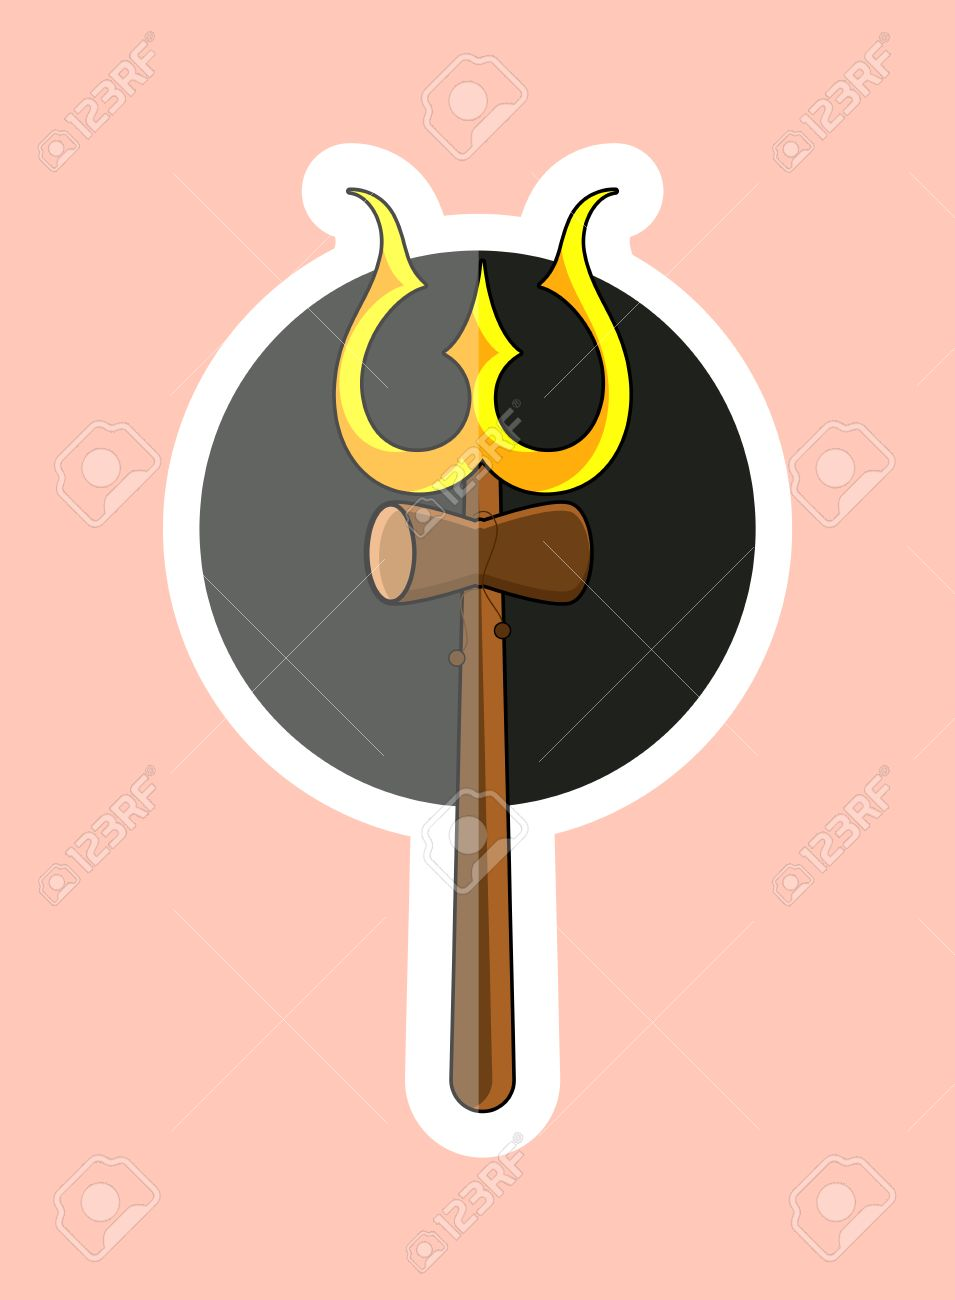 Sticker of trident of shiva symbol royalty free cliparts vectors sticker of trident of shiva symbol stock vector 57731691 biocorpaavc Image collections